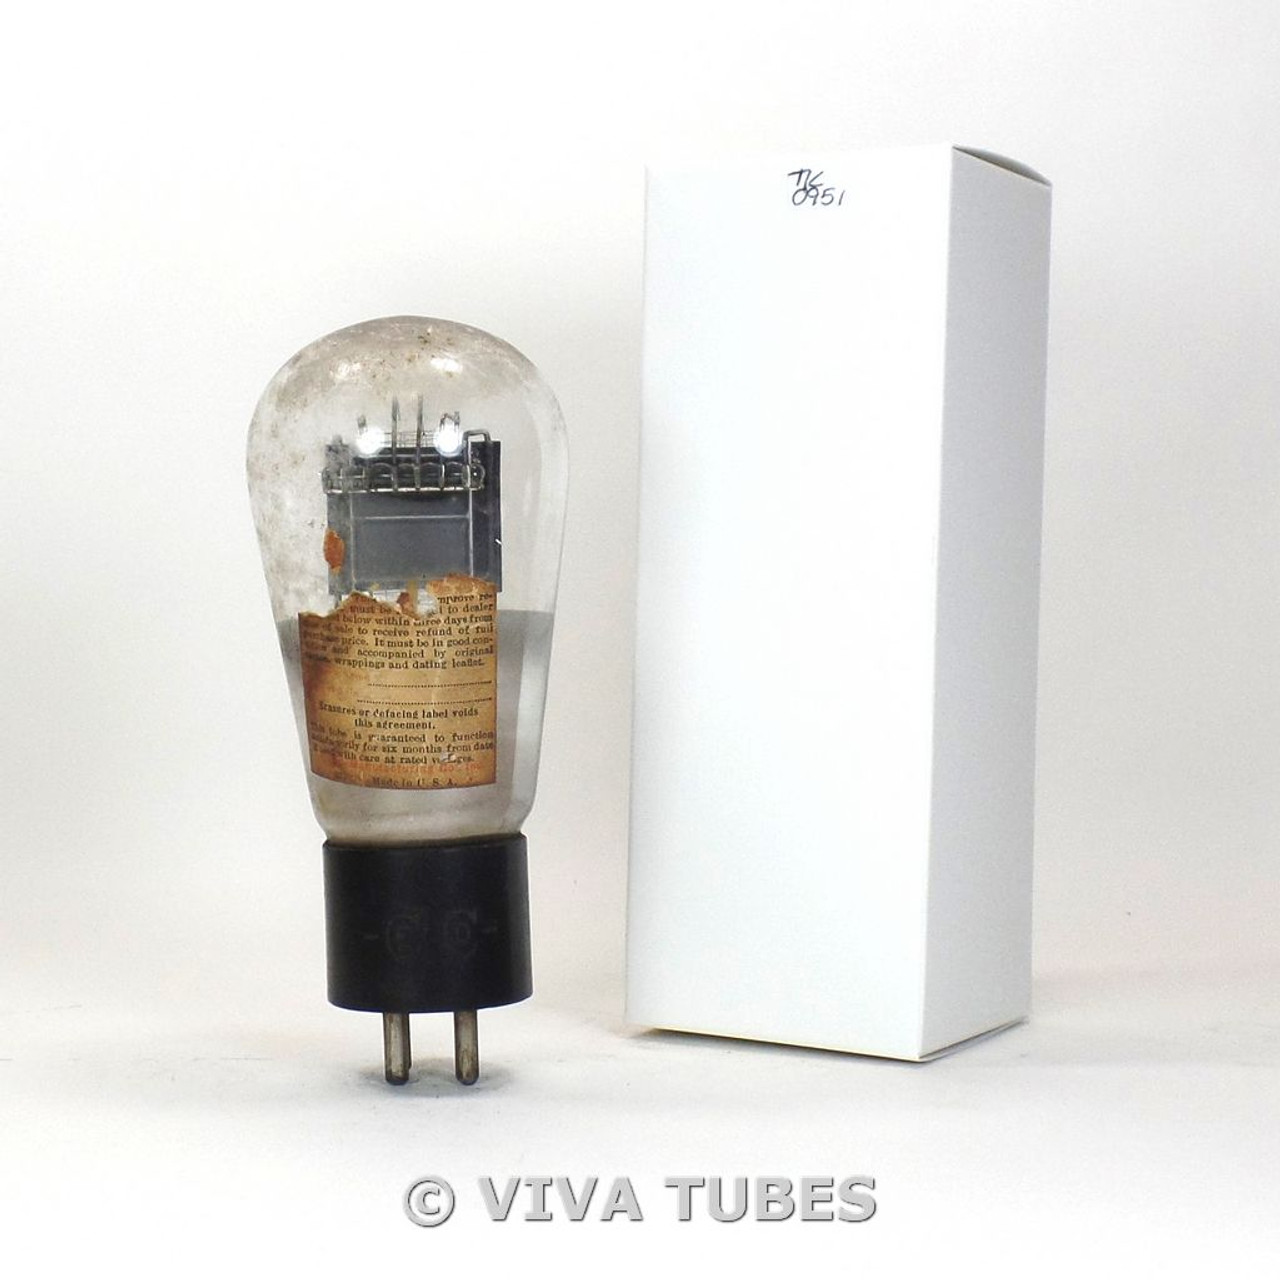 TESTS LOW/BAD Ceco USA Type 45 Black Plate ENGRAVED Globe Vacuum Tube